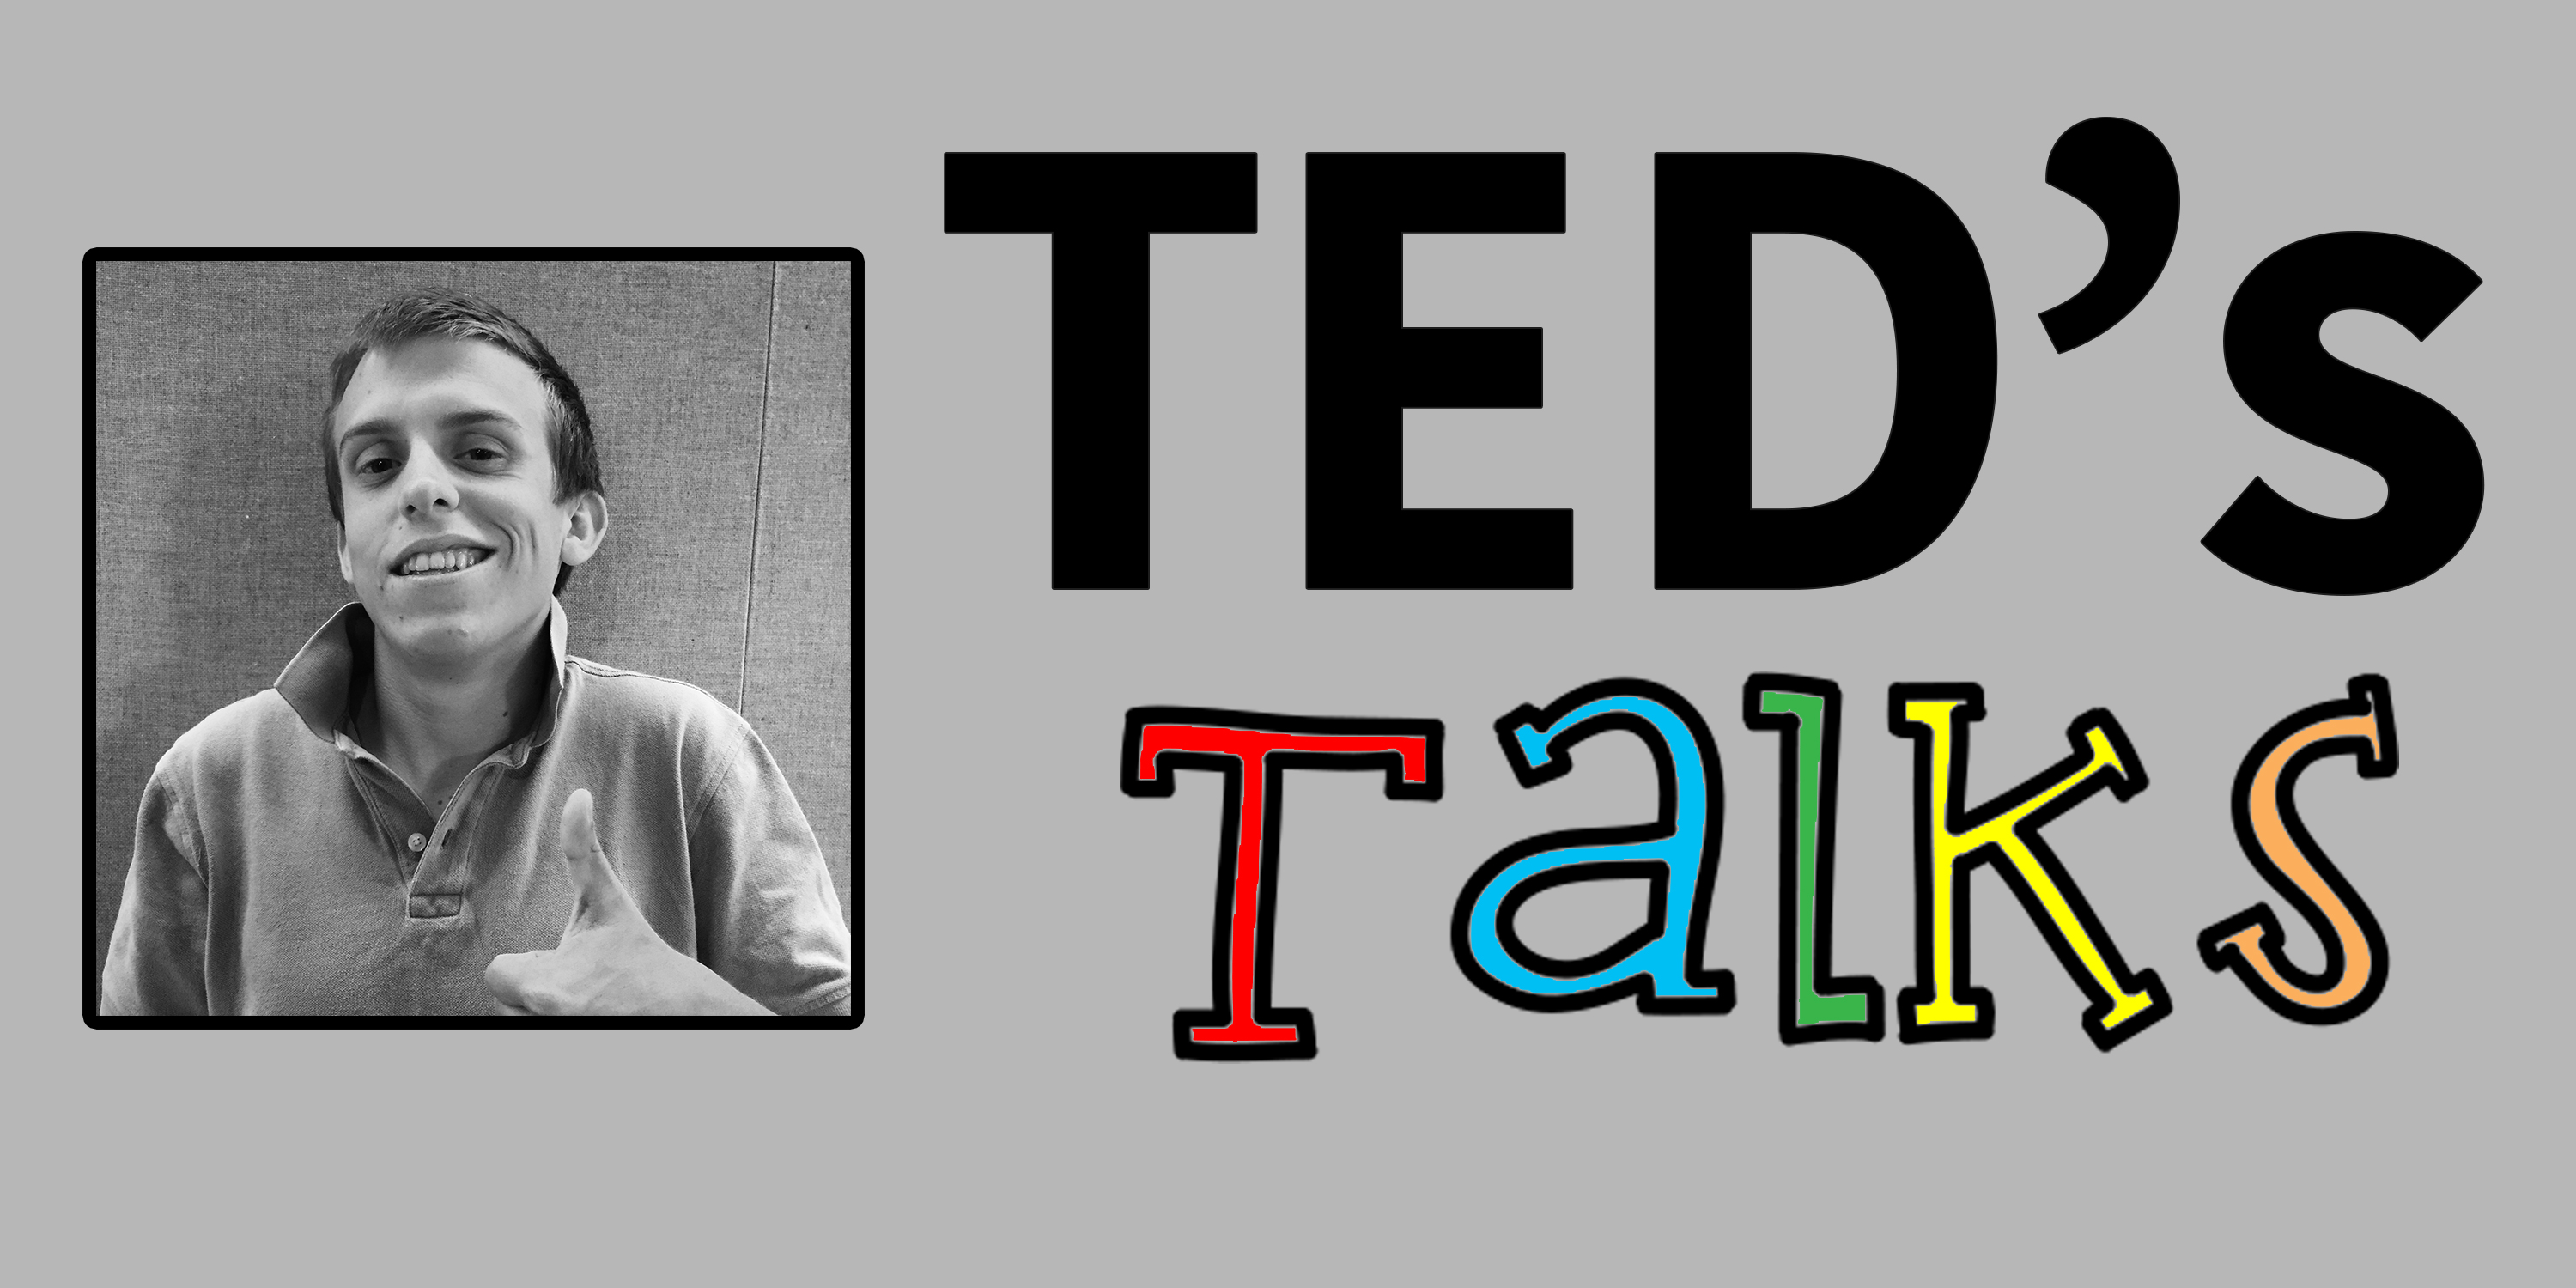 Ted's Talks